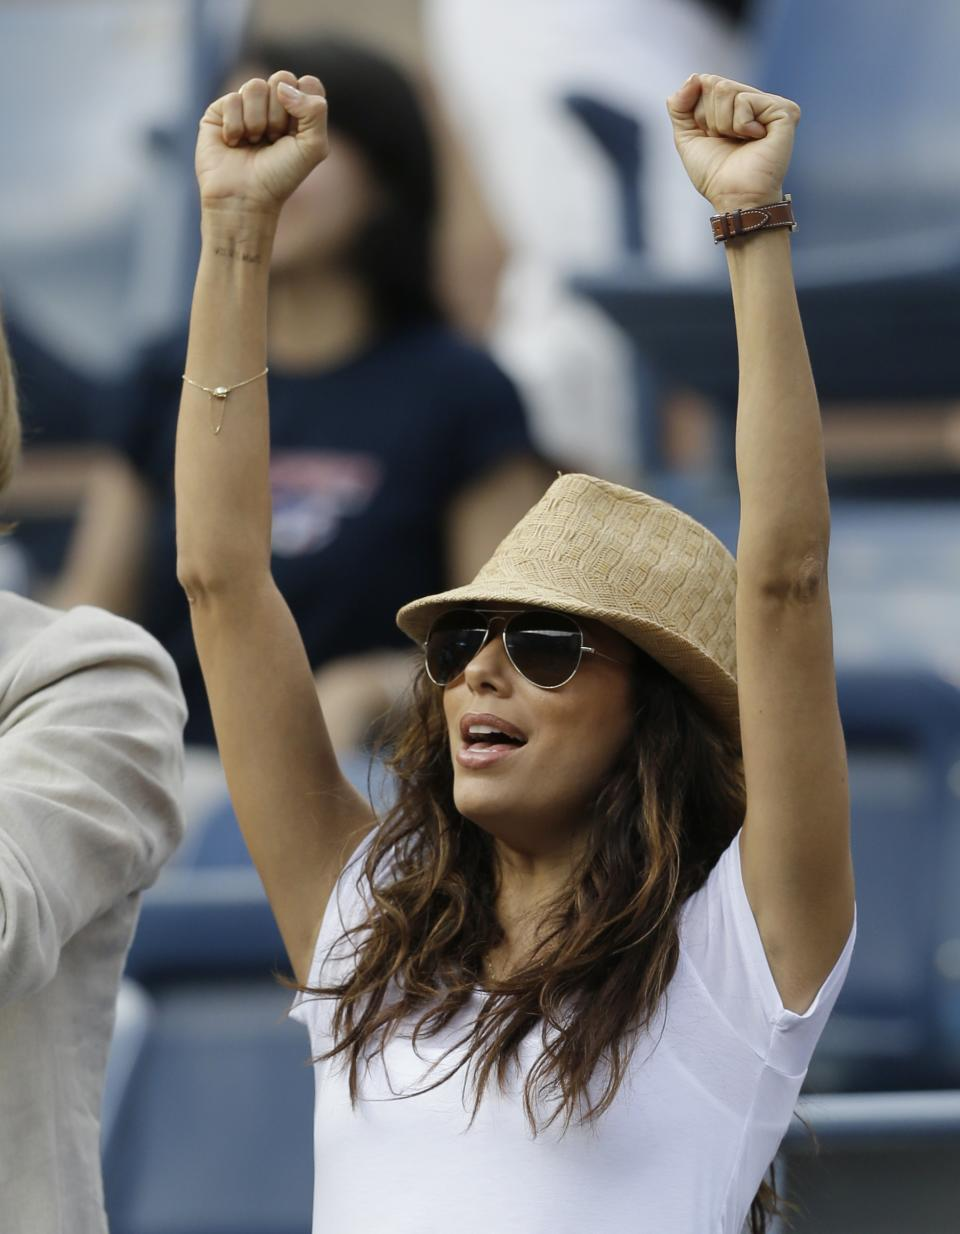 Eva Longoria cheers as Serena Williams and Sara Errani of Italy take the court to play in a semifinal match at the 2012 US Open tennis tournament,  Friday, Sept. 7, 2012, in New York. (AP Photo/Darron Cummings)